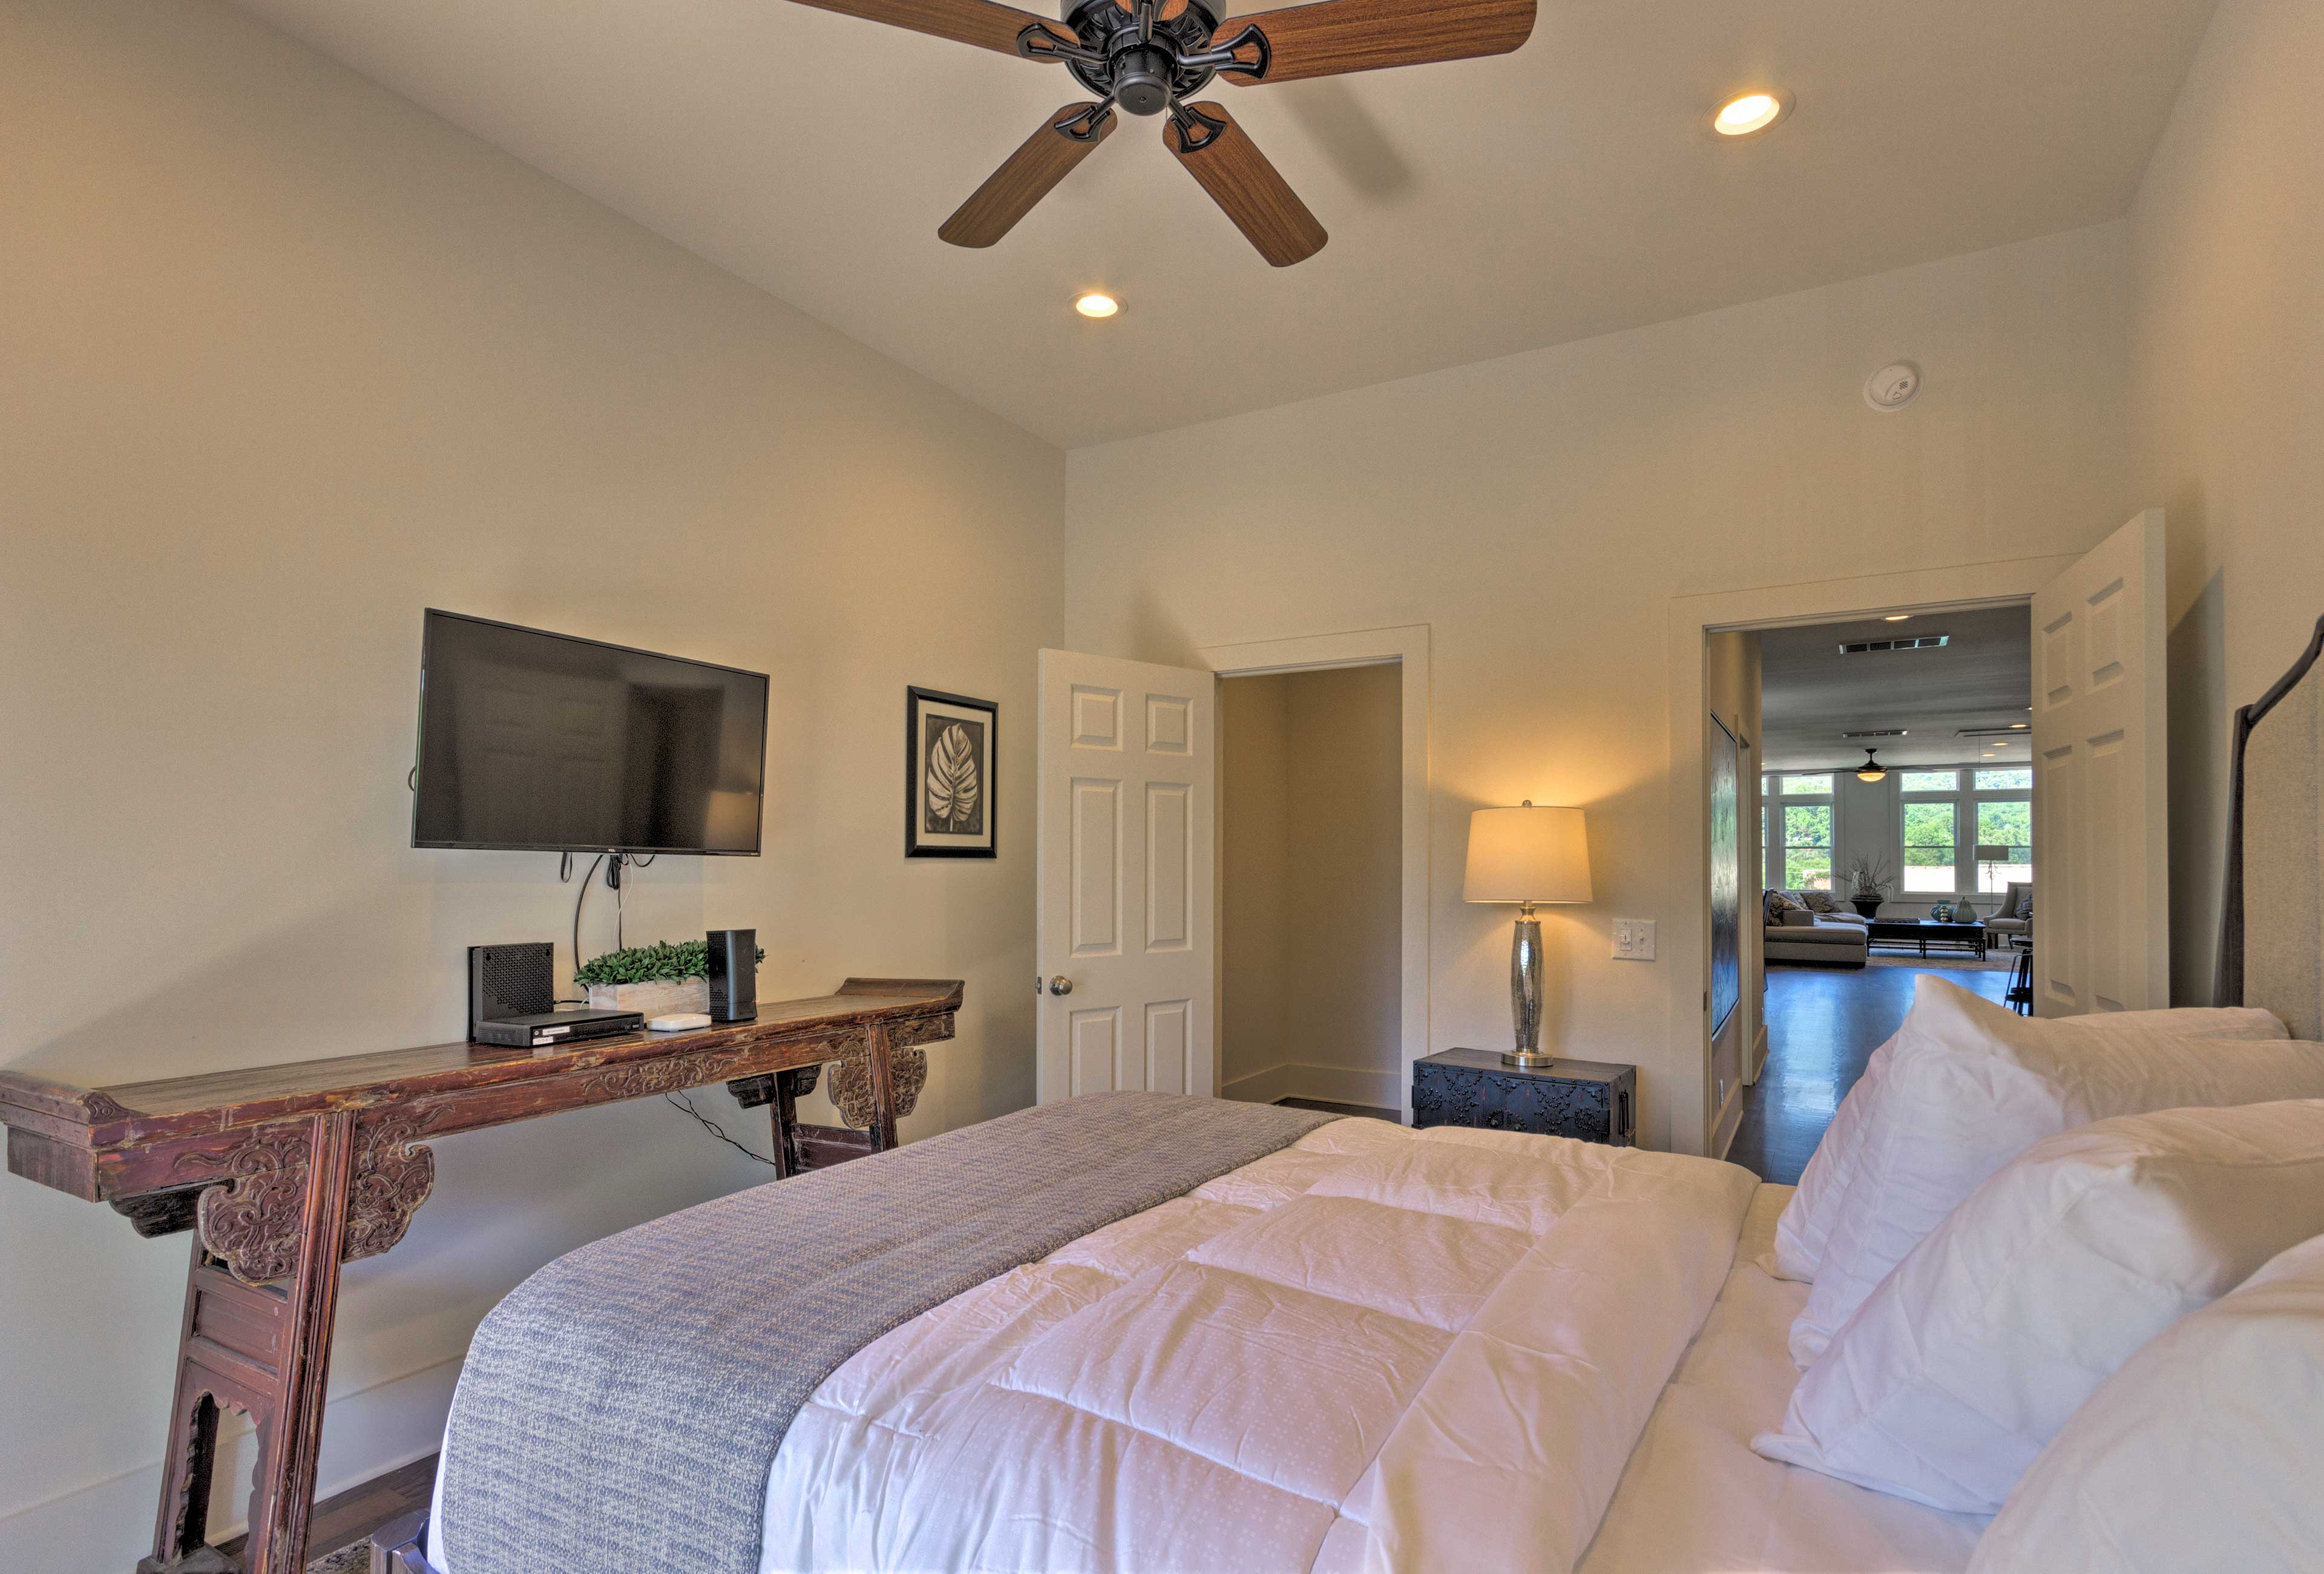 The master bedroom debuts a queen-sized bed & flat-screen TV.